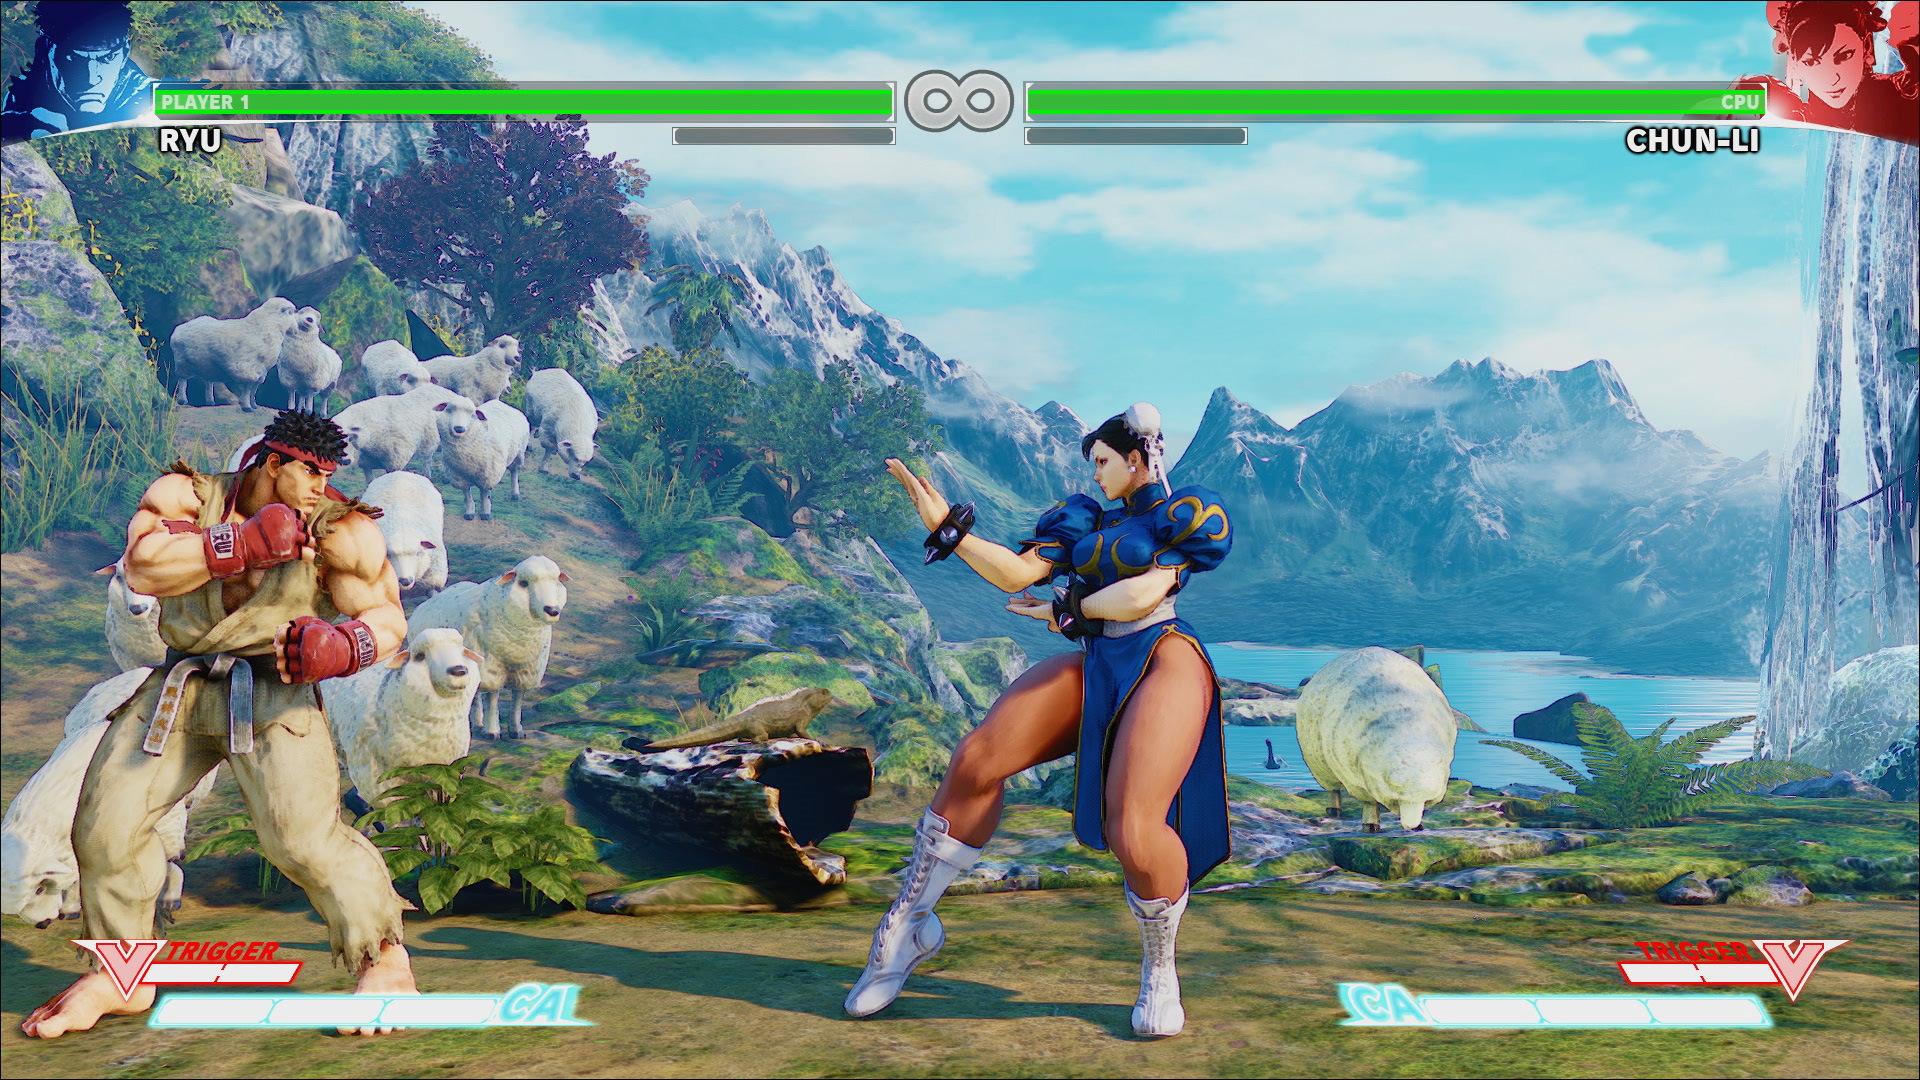 SF5 Beta Neuseeland Stage